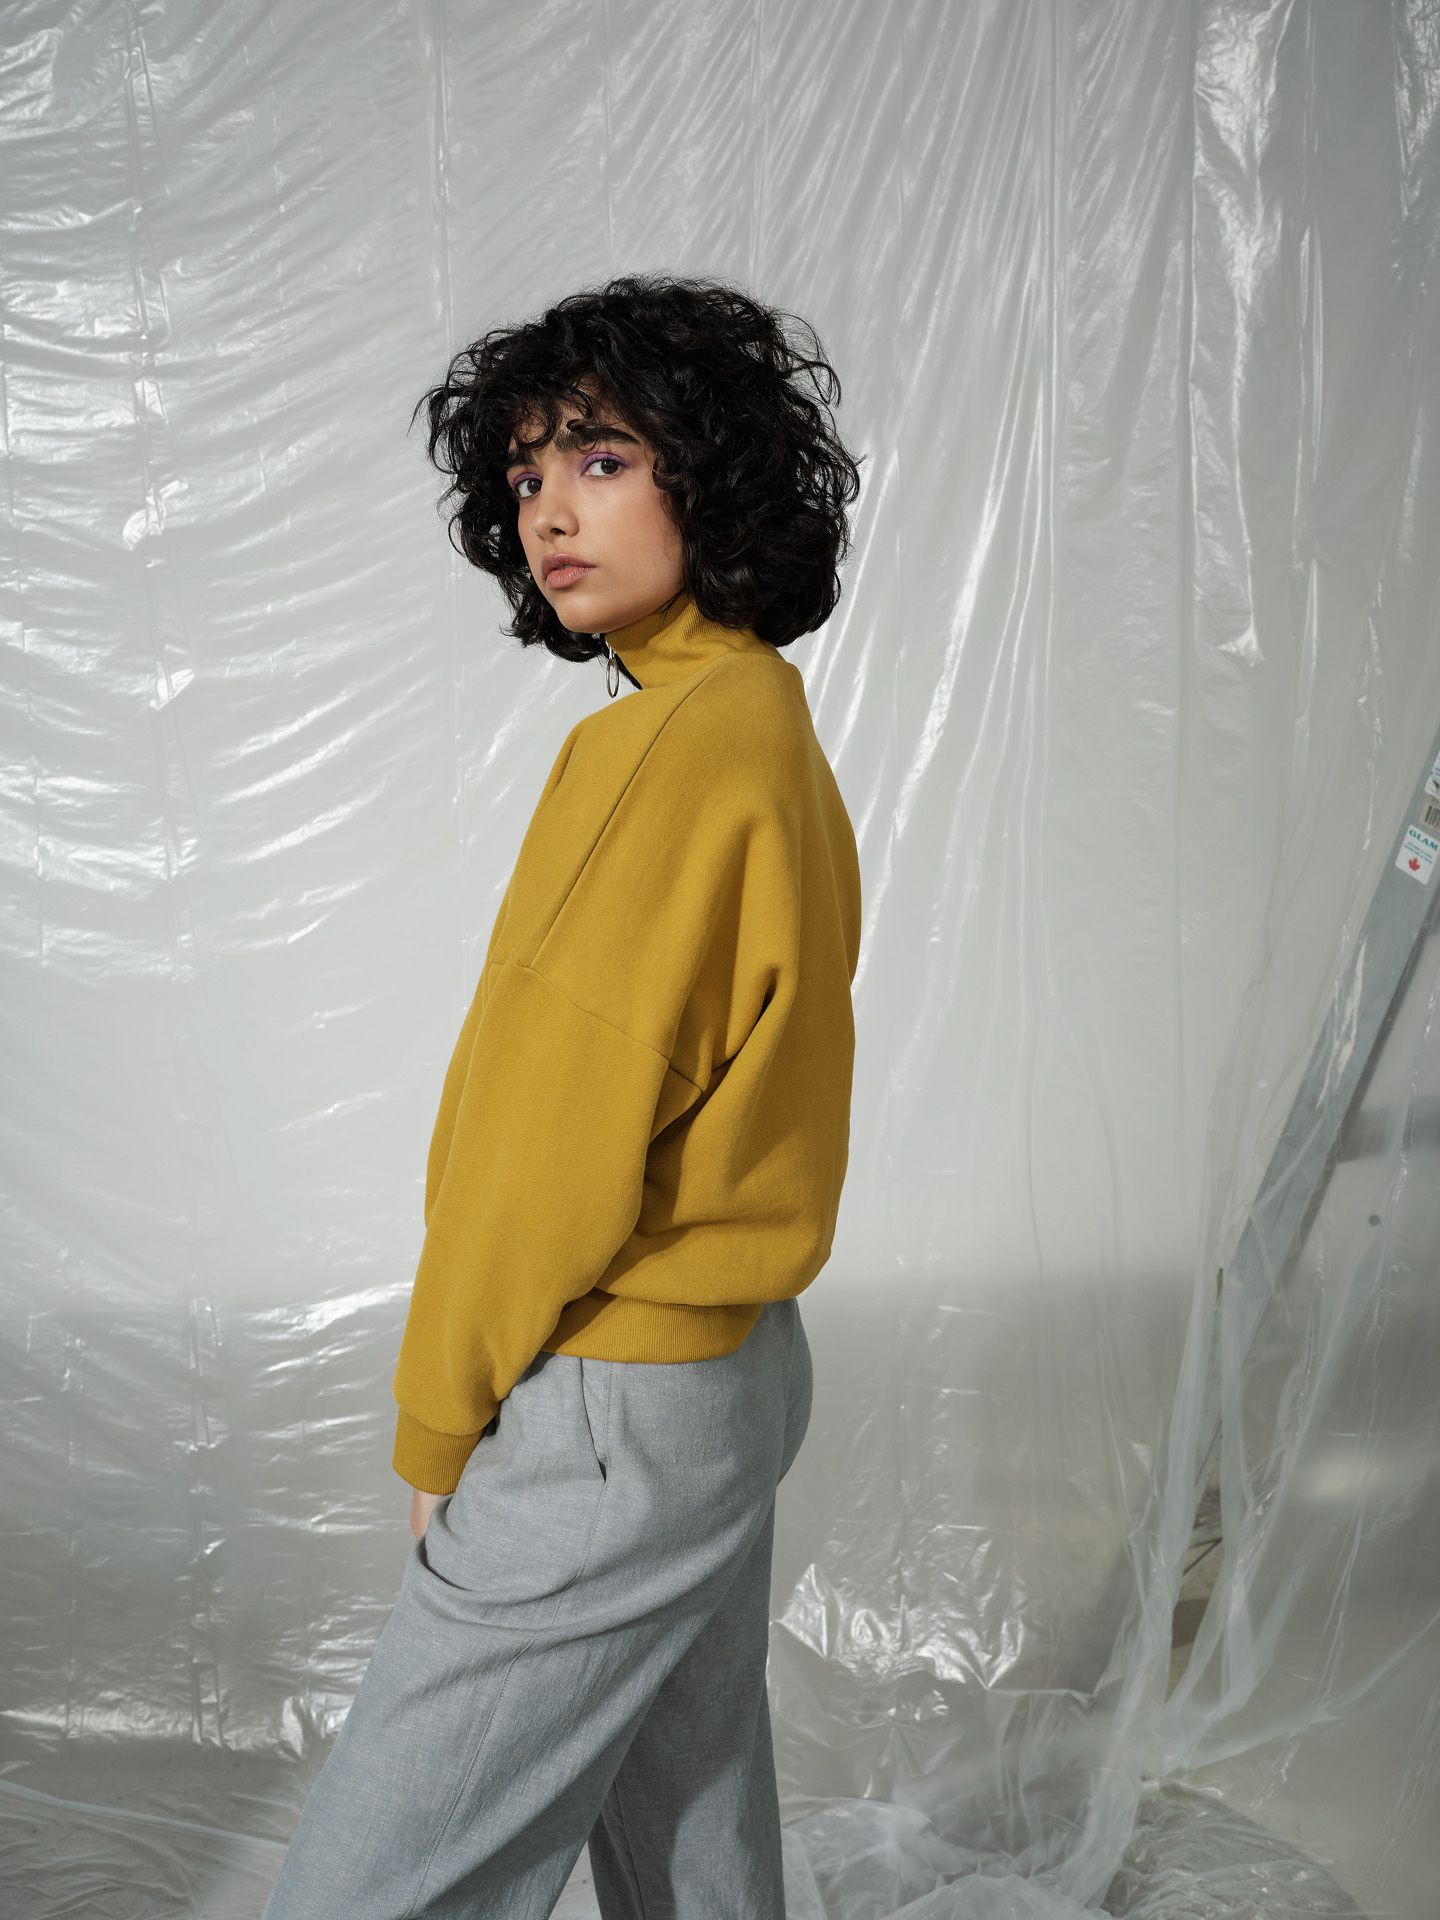 curly haired female model wearing mustard sweater and grey pants posing looking at camera photographed by Maxyme G Delisle with artistic direction and styling by Studio TB